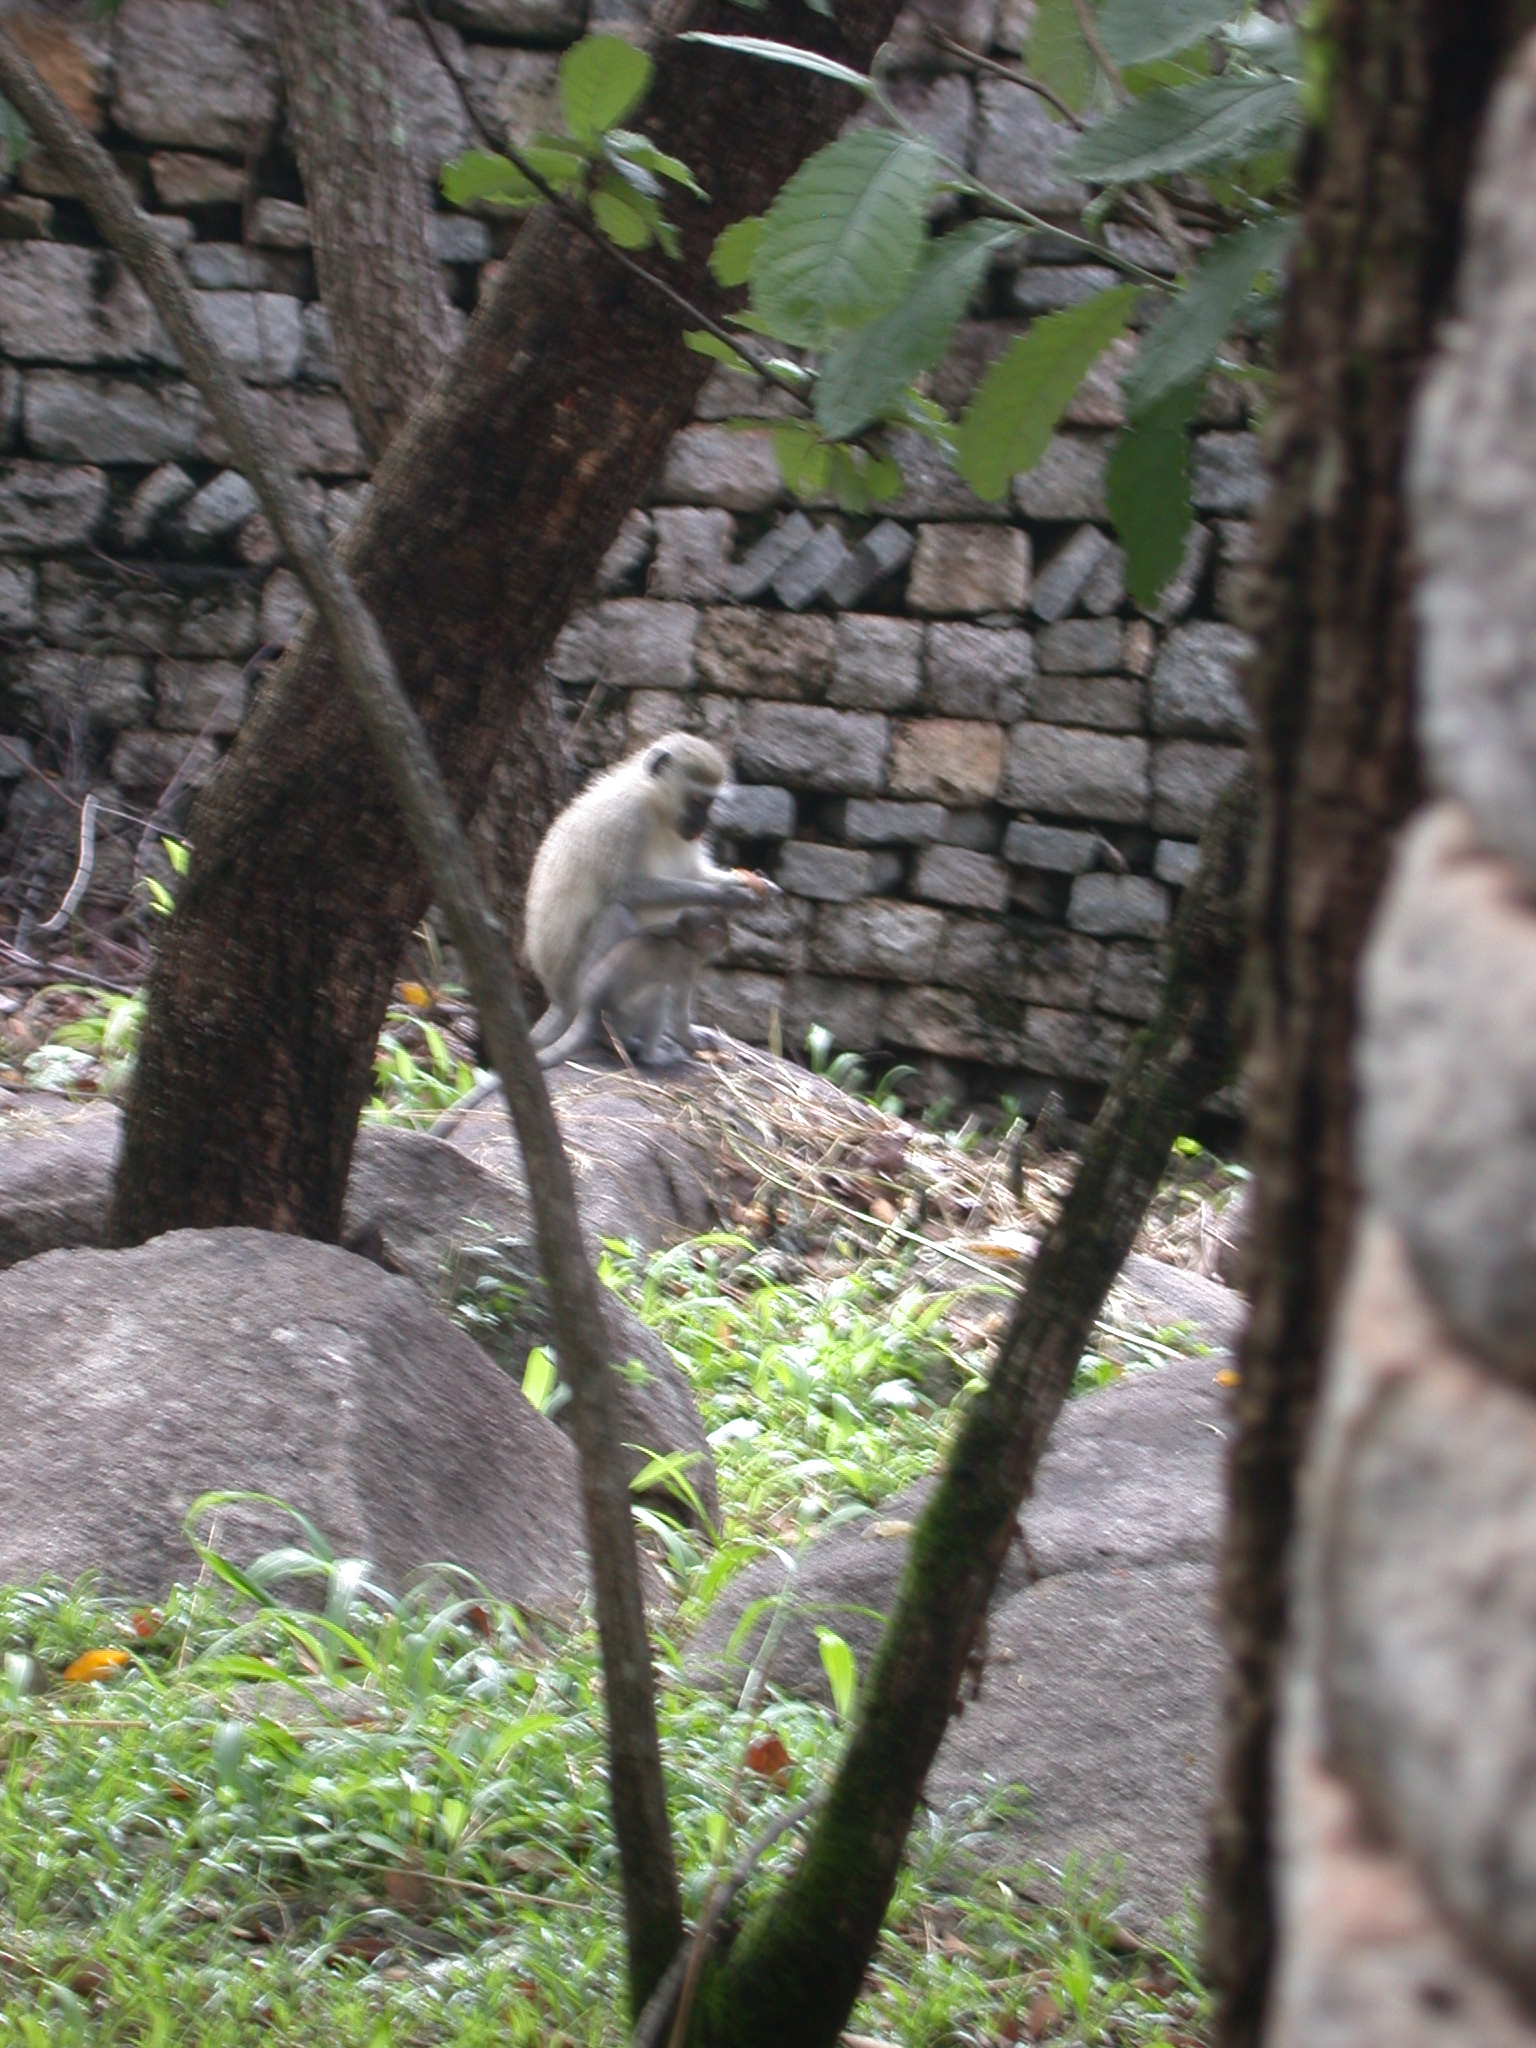 Monkey and Baby in Garden Outside My Suite at the Ancient City Lodge, Great Zimbabwe, Outside Masvingo, Zimbabwe